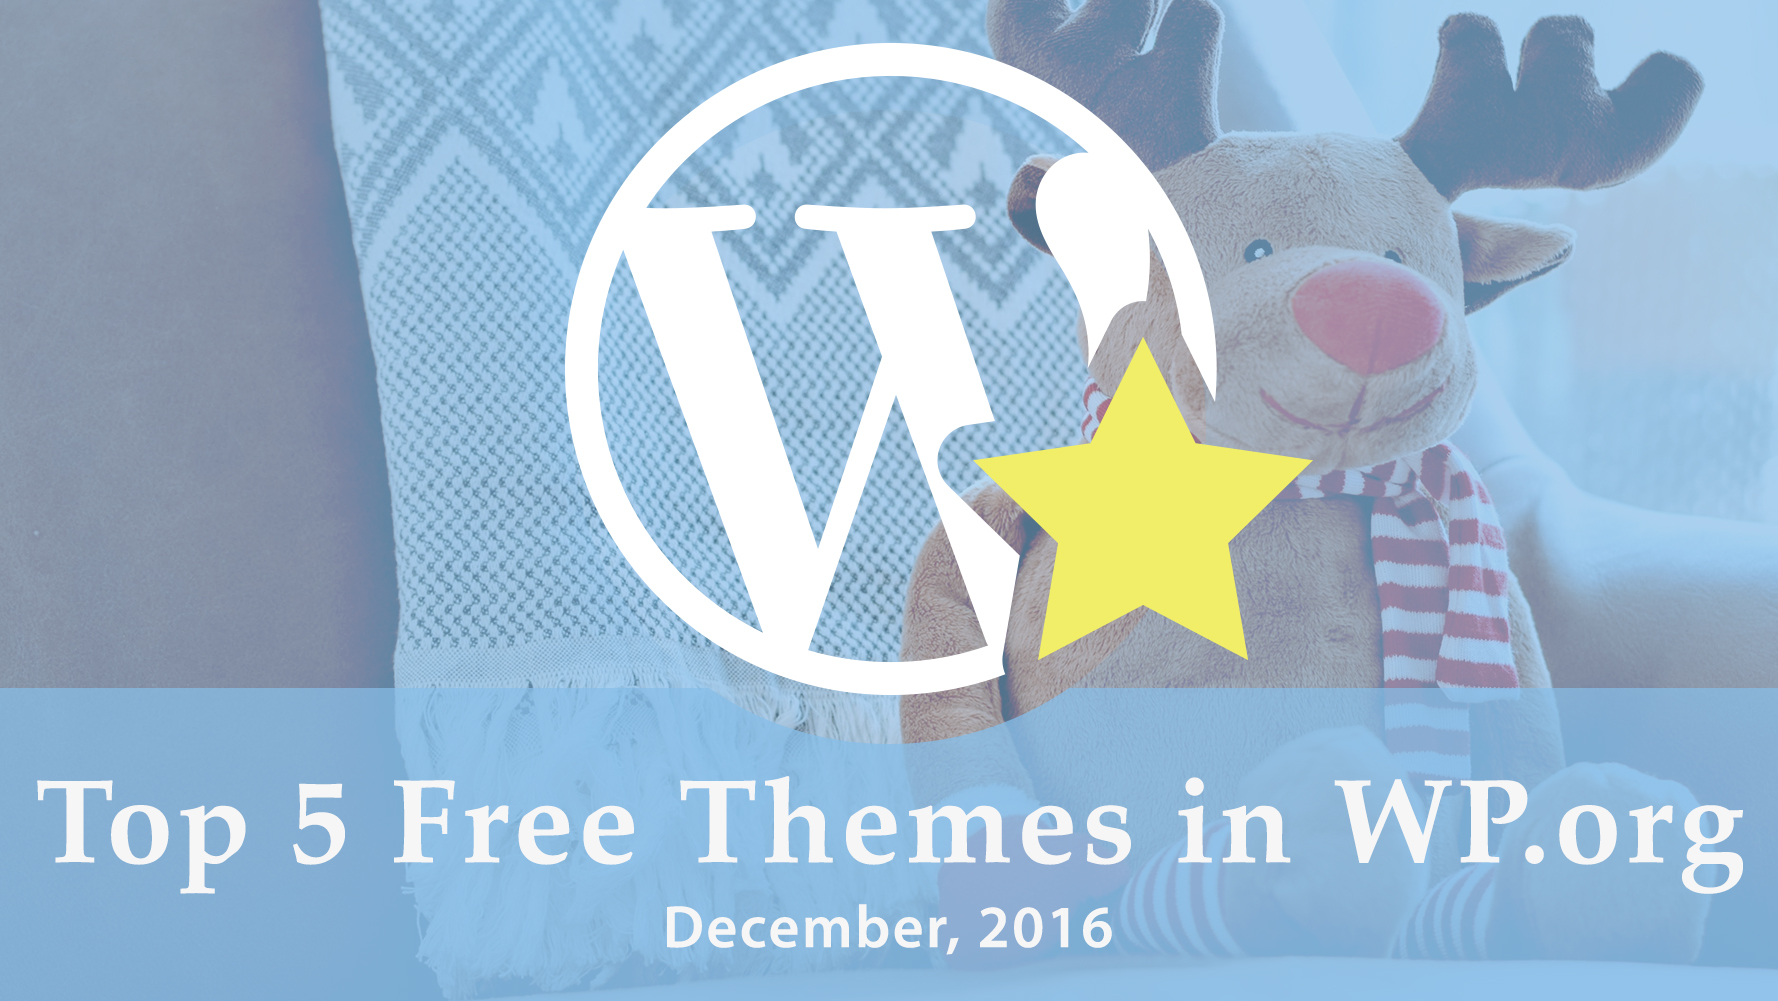 Top 5 Free Themes in WordPress.org  – December 2016